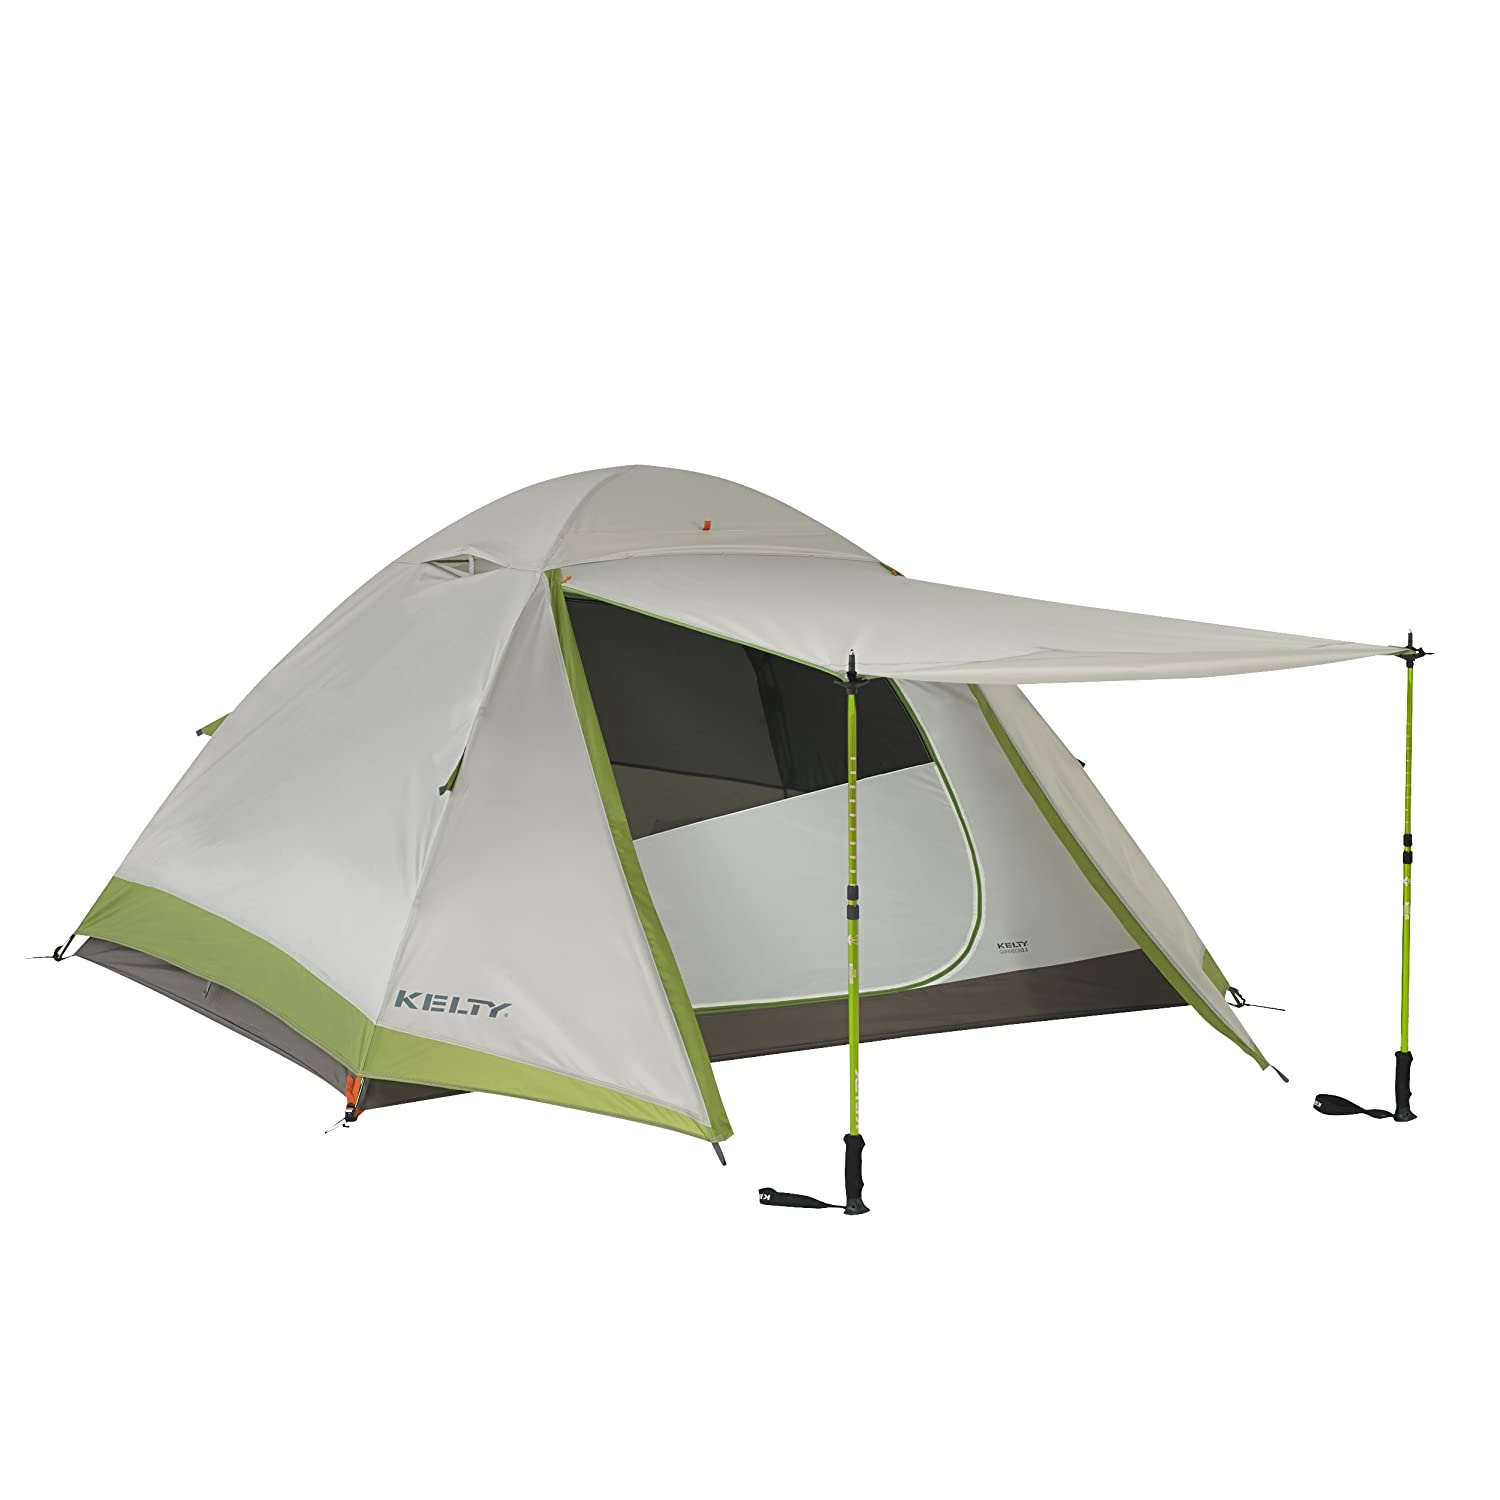 Amazon.com  Kelty Gunnison 3.3 Tent with Footprint  Sports u0026 Outdoors  sc 1 st  Amazon.com : footprint tent - memphite.com